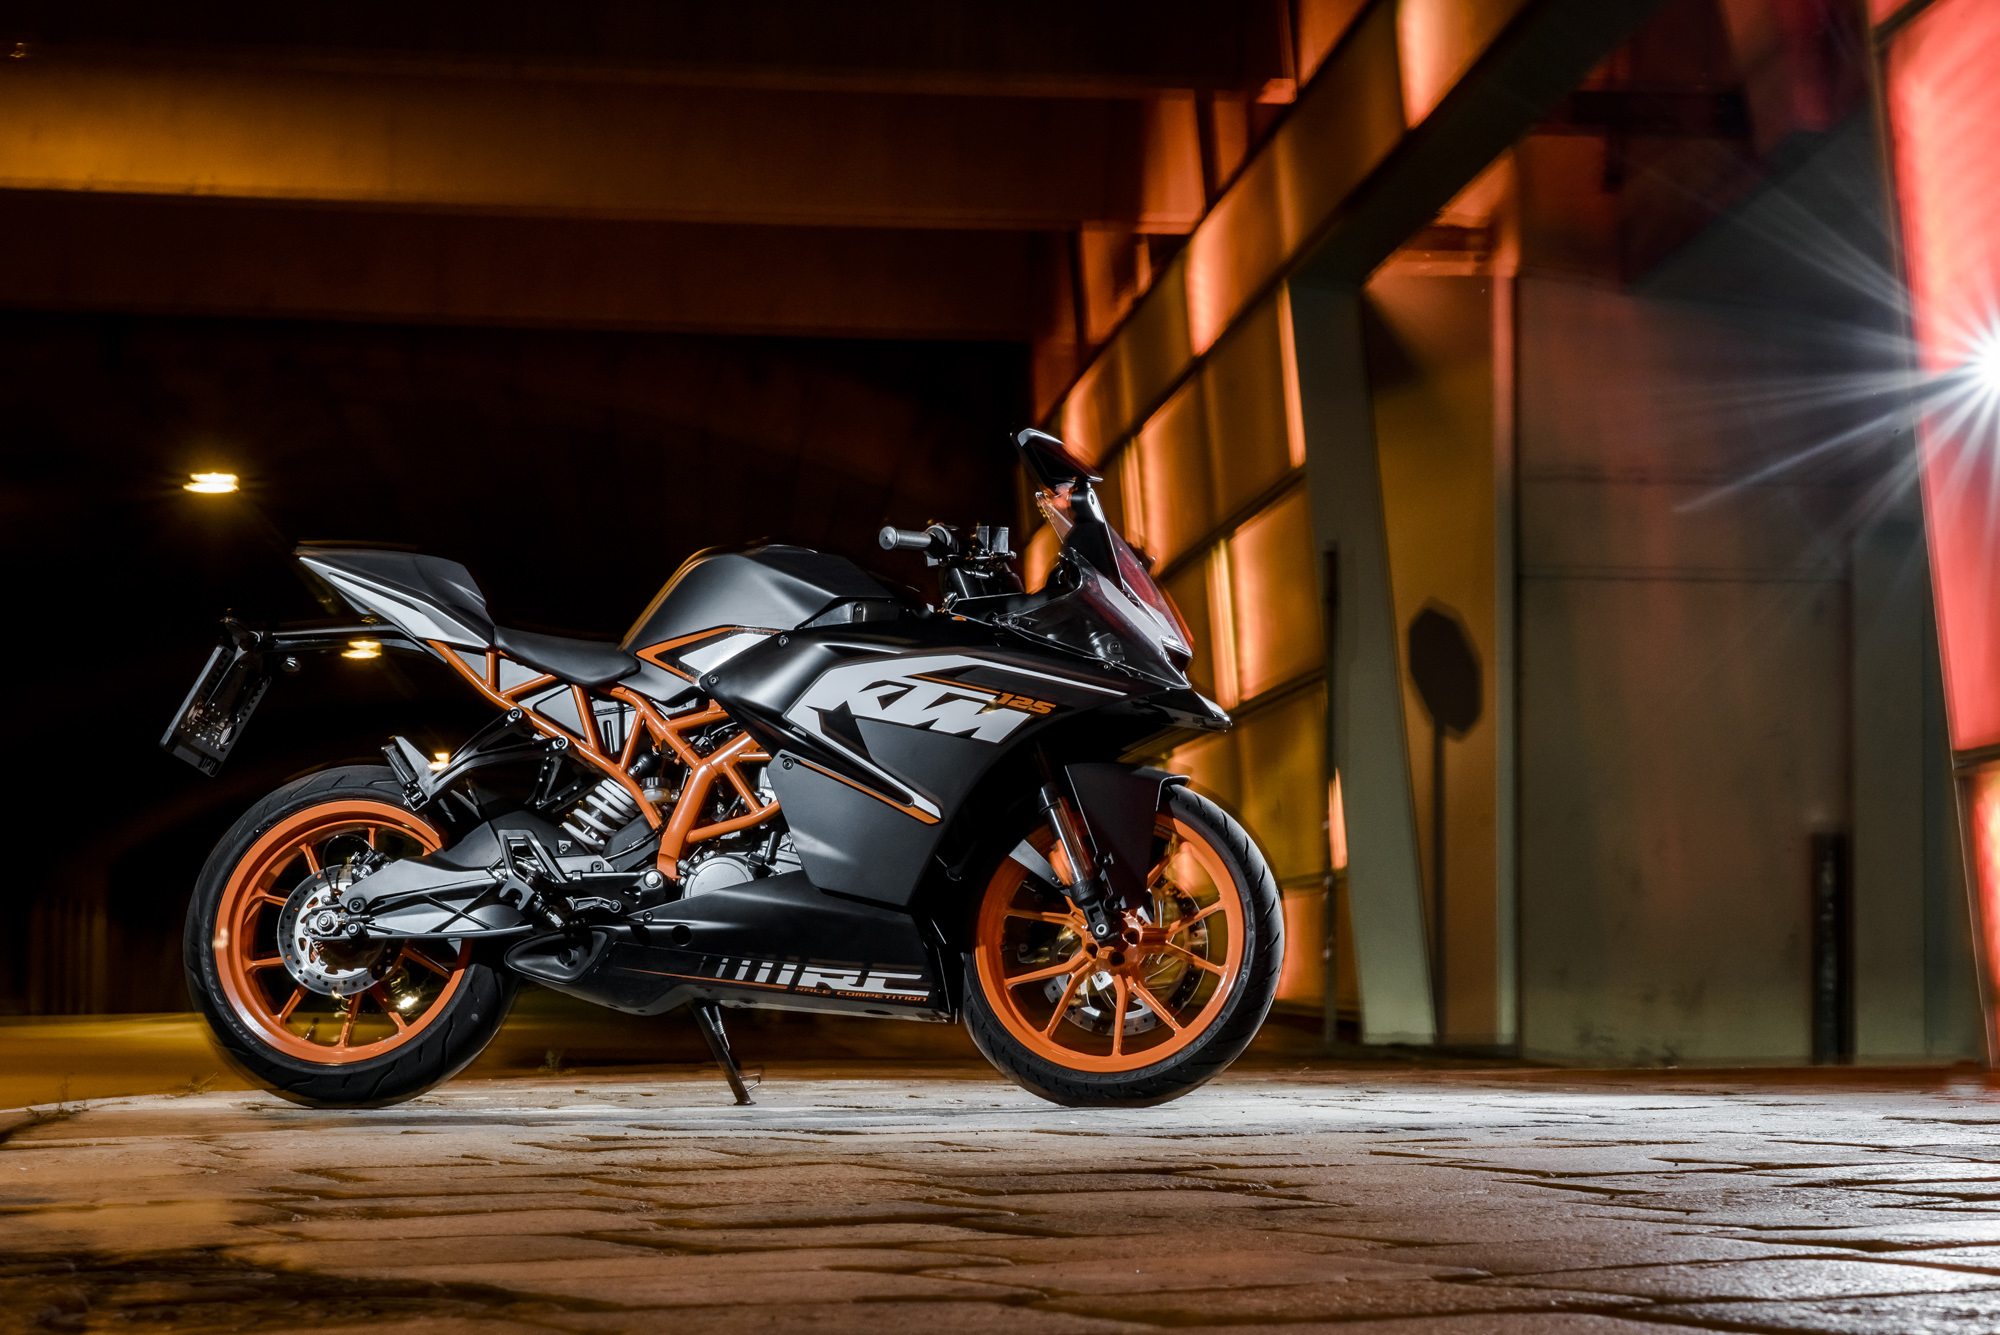 Ktm Rc Wallpaper 2000x1335 Download Hd Wallpaper Wallpapertip